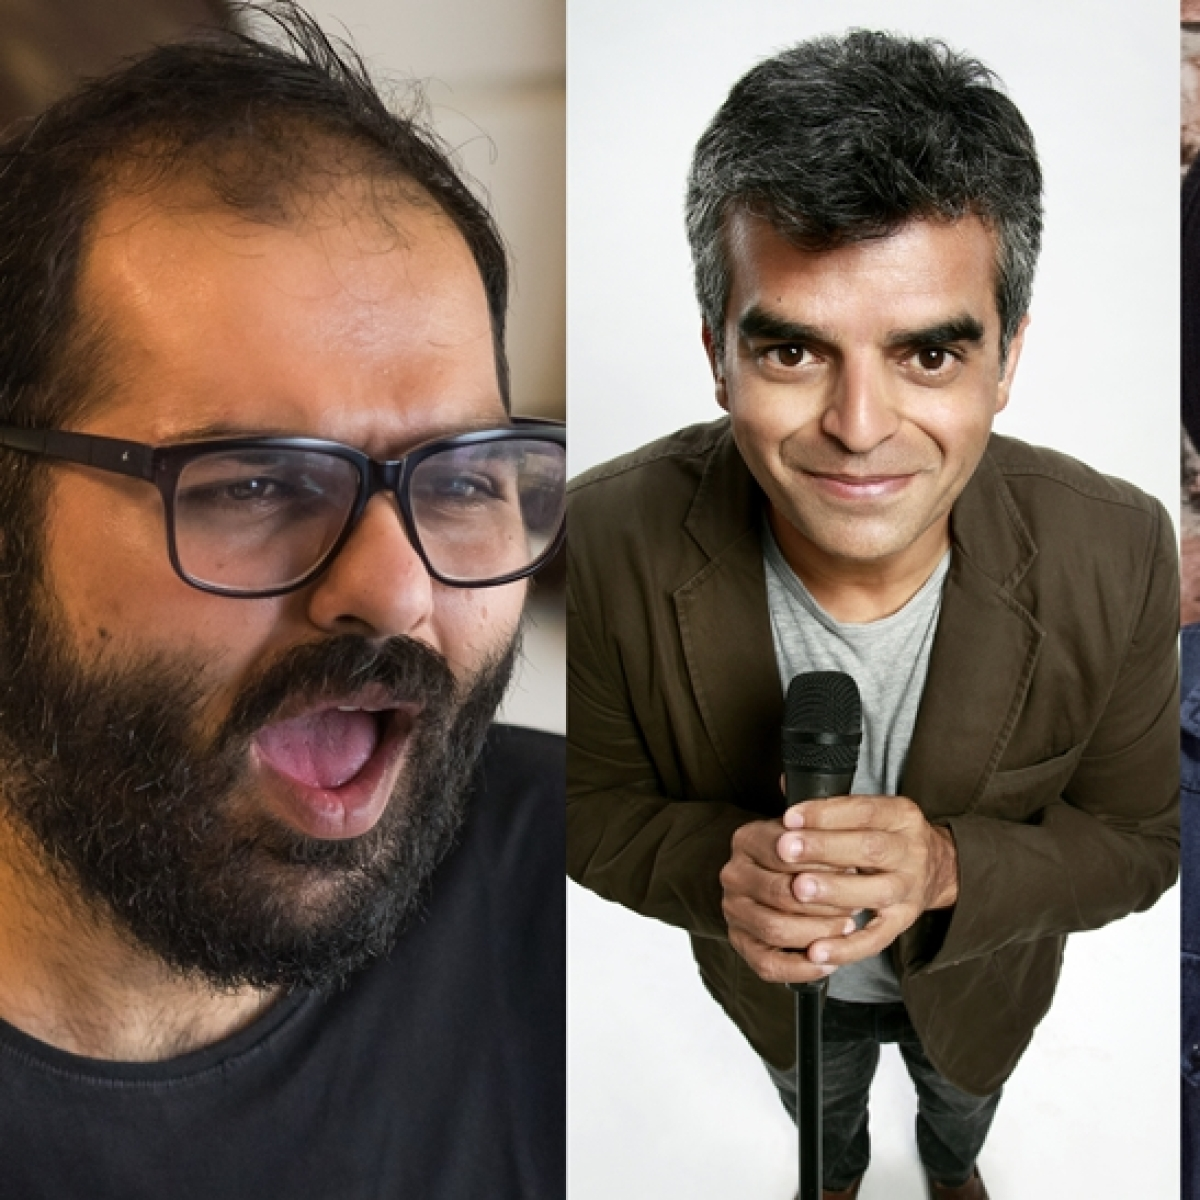 'Yeh kya ch******* hai': Comedians Atul Khatri, Kunal Kamra, Sapan Verma react to PM Modi's video message